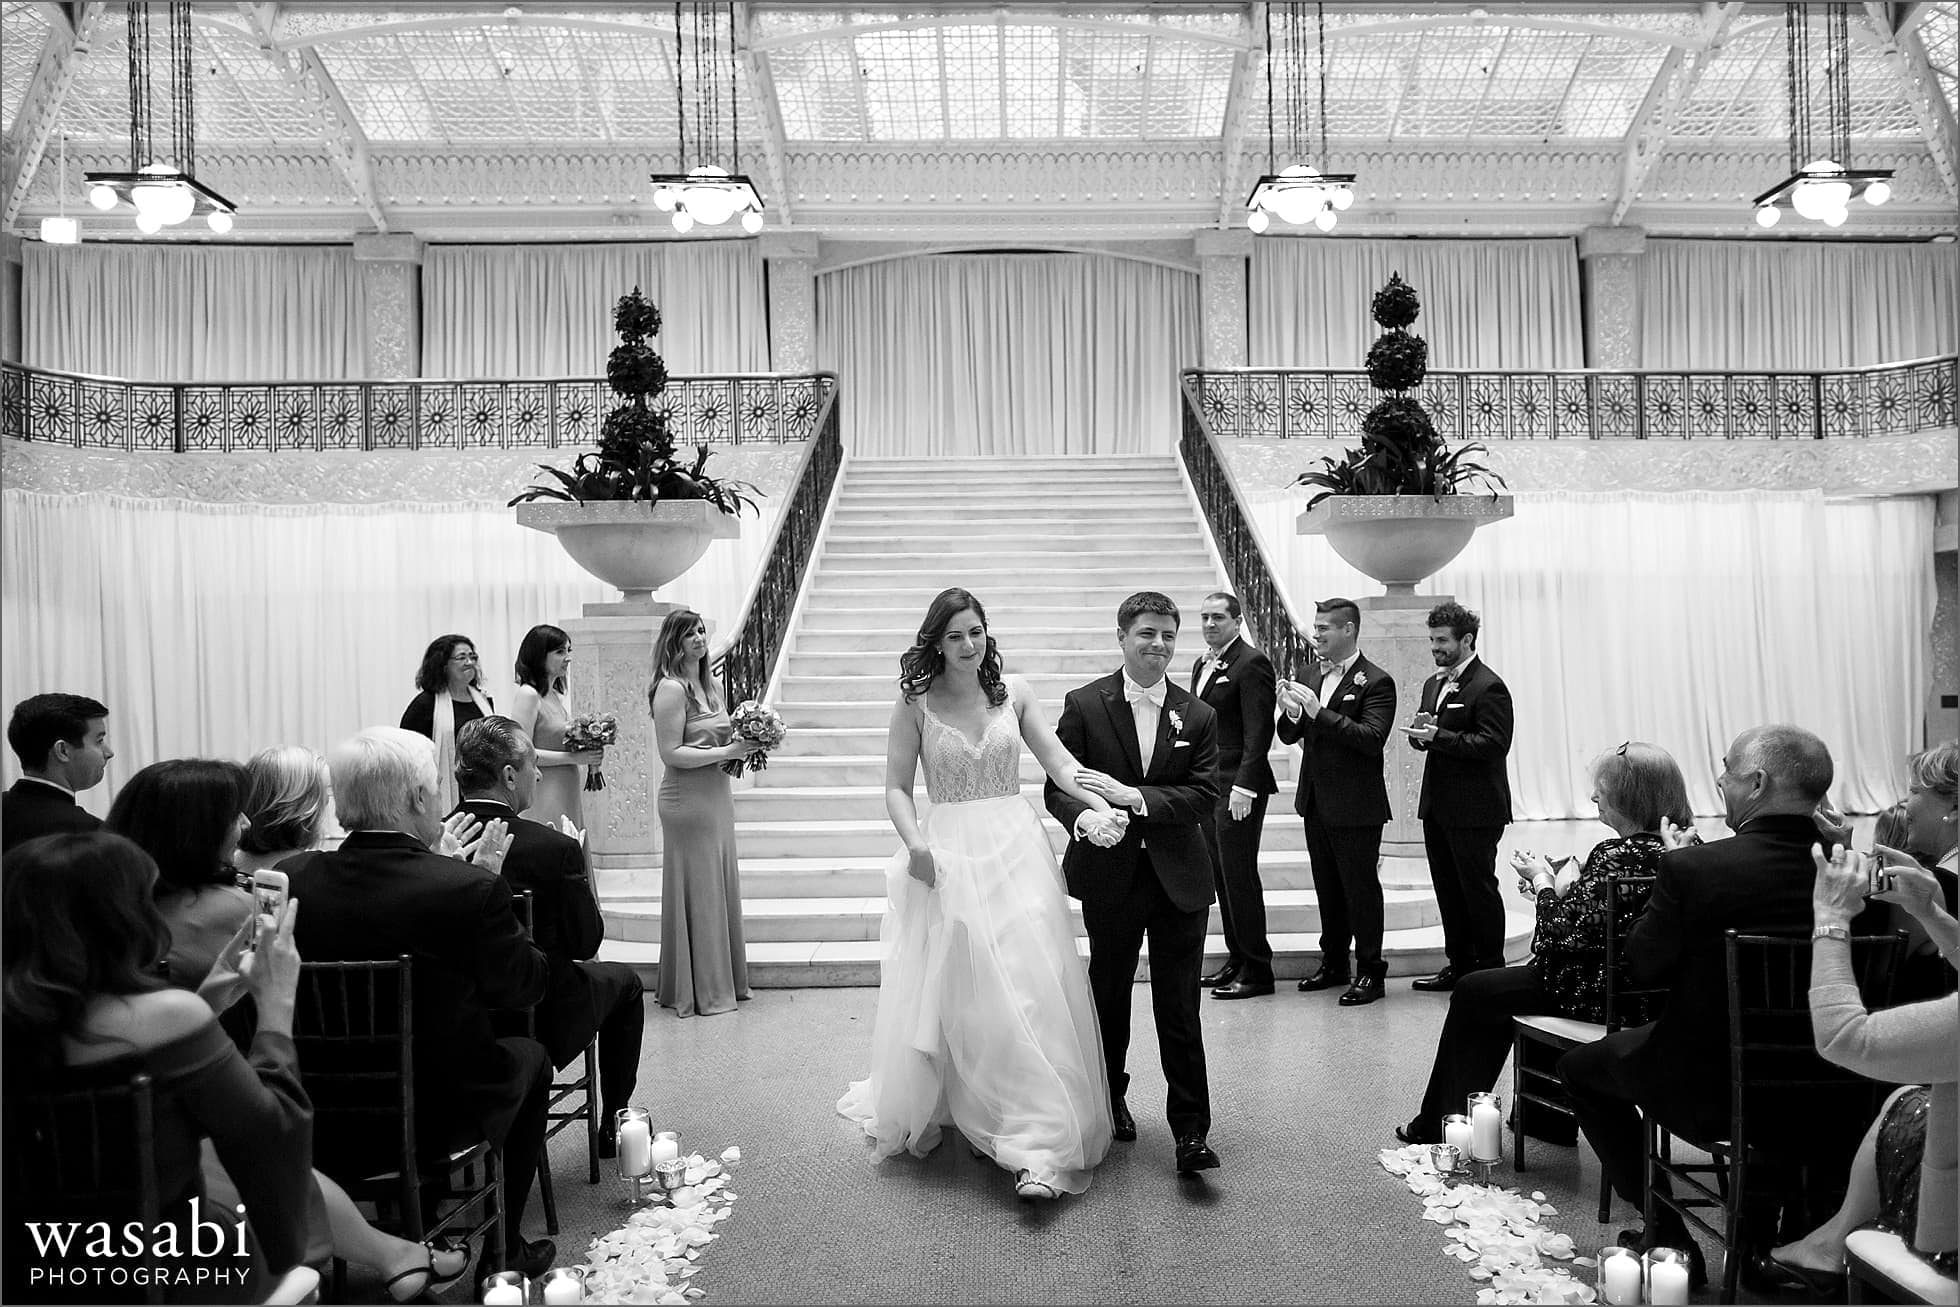 The Rookery Building wedding photos with bride and groom walking back down the aisle after their wedding ceremony at The Rookery Building in Chicago